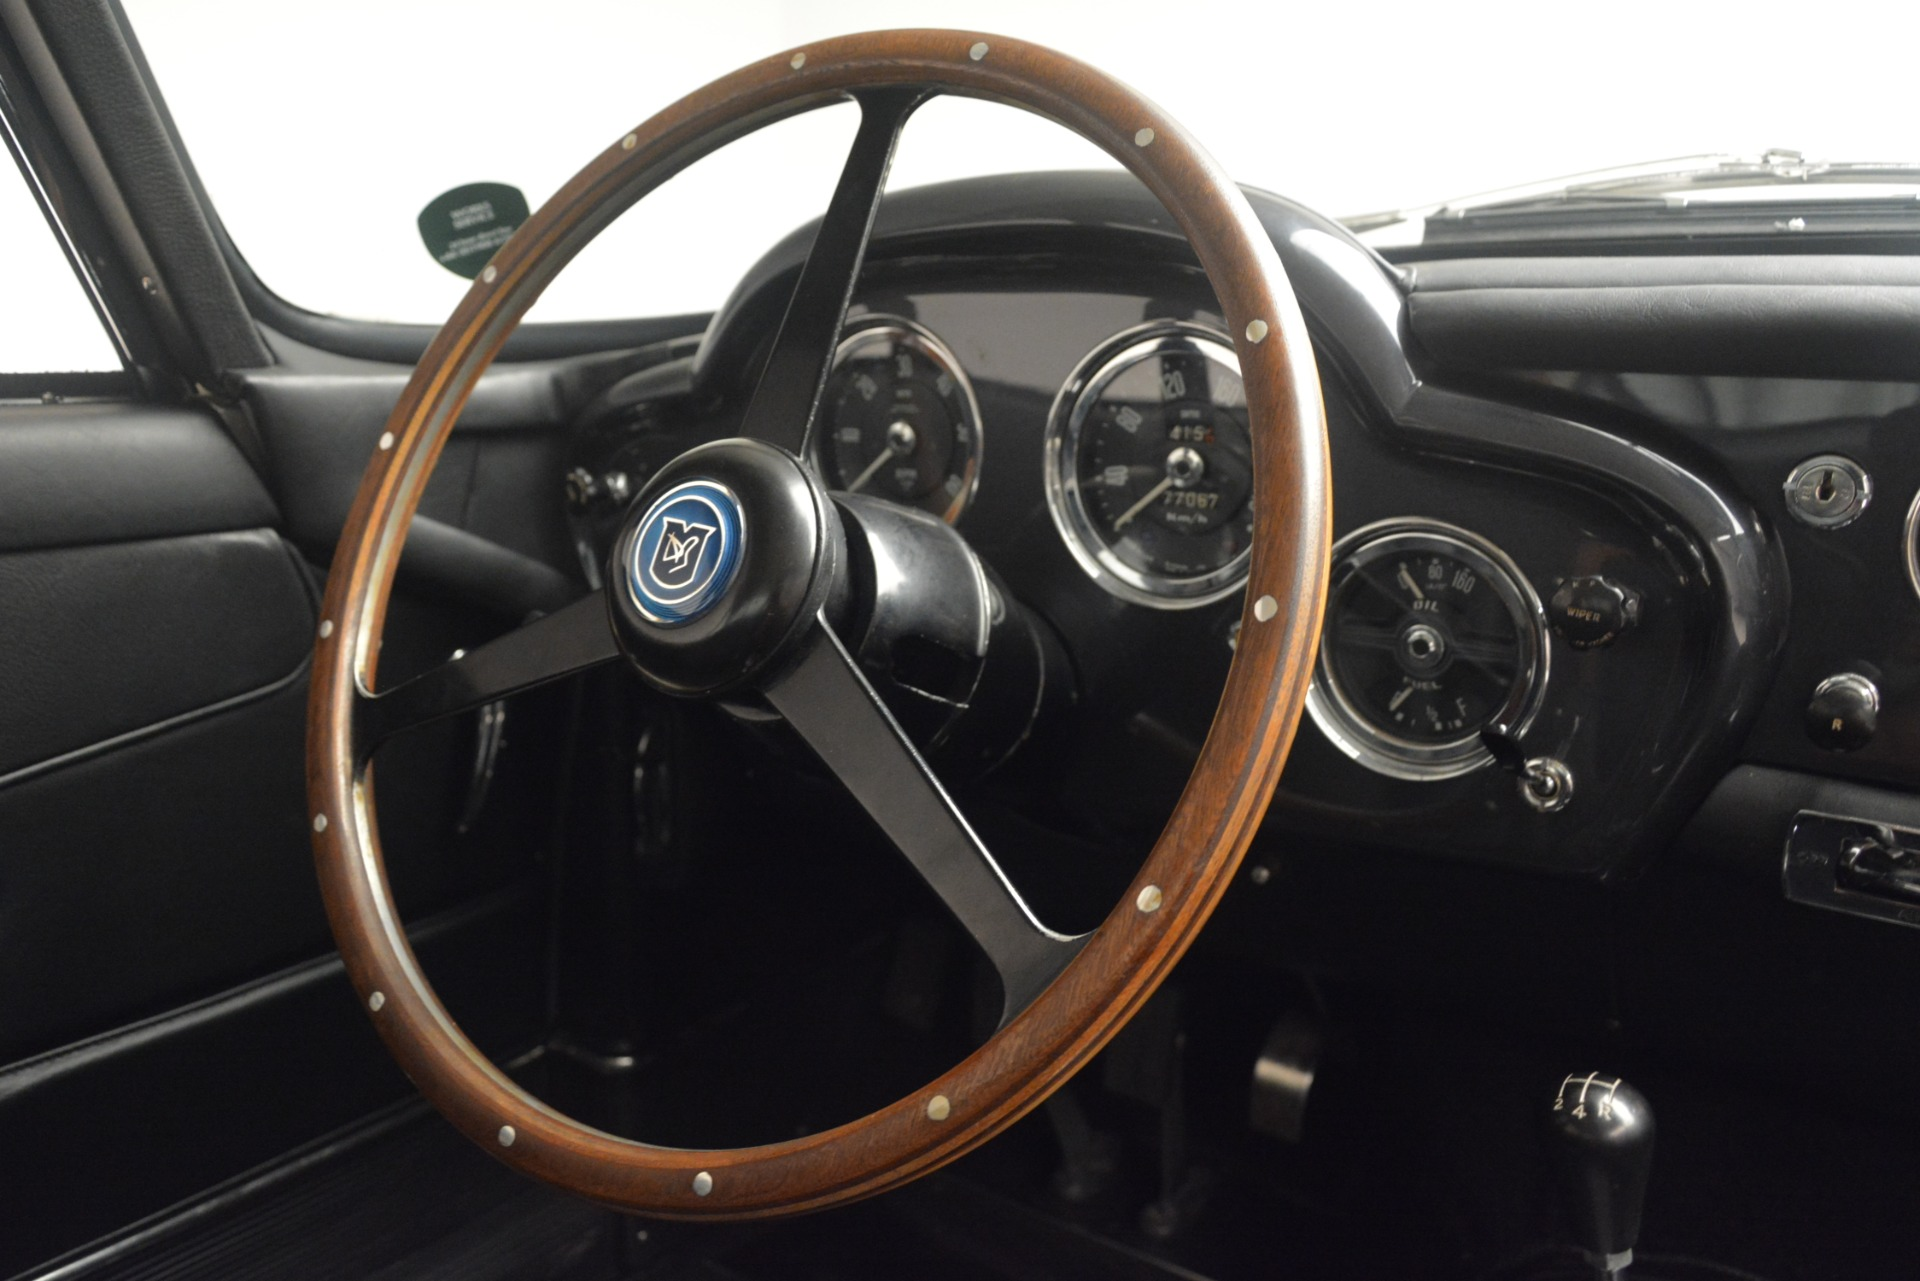 Used 1961 Aston Martin DB4 Series IV Coupe For Sale In Greenwich, CT 3186_p27